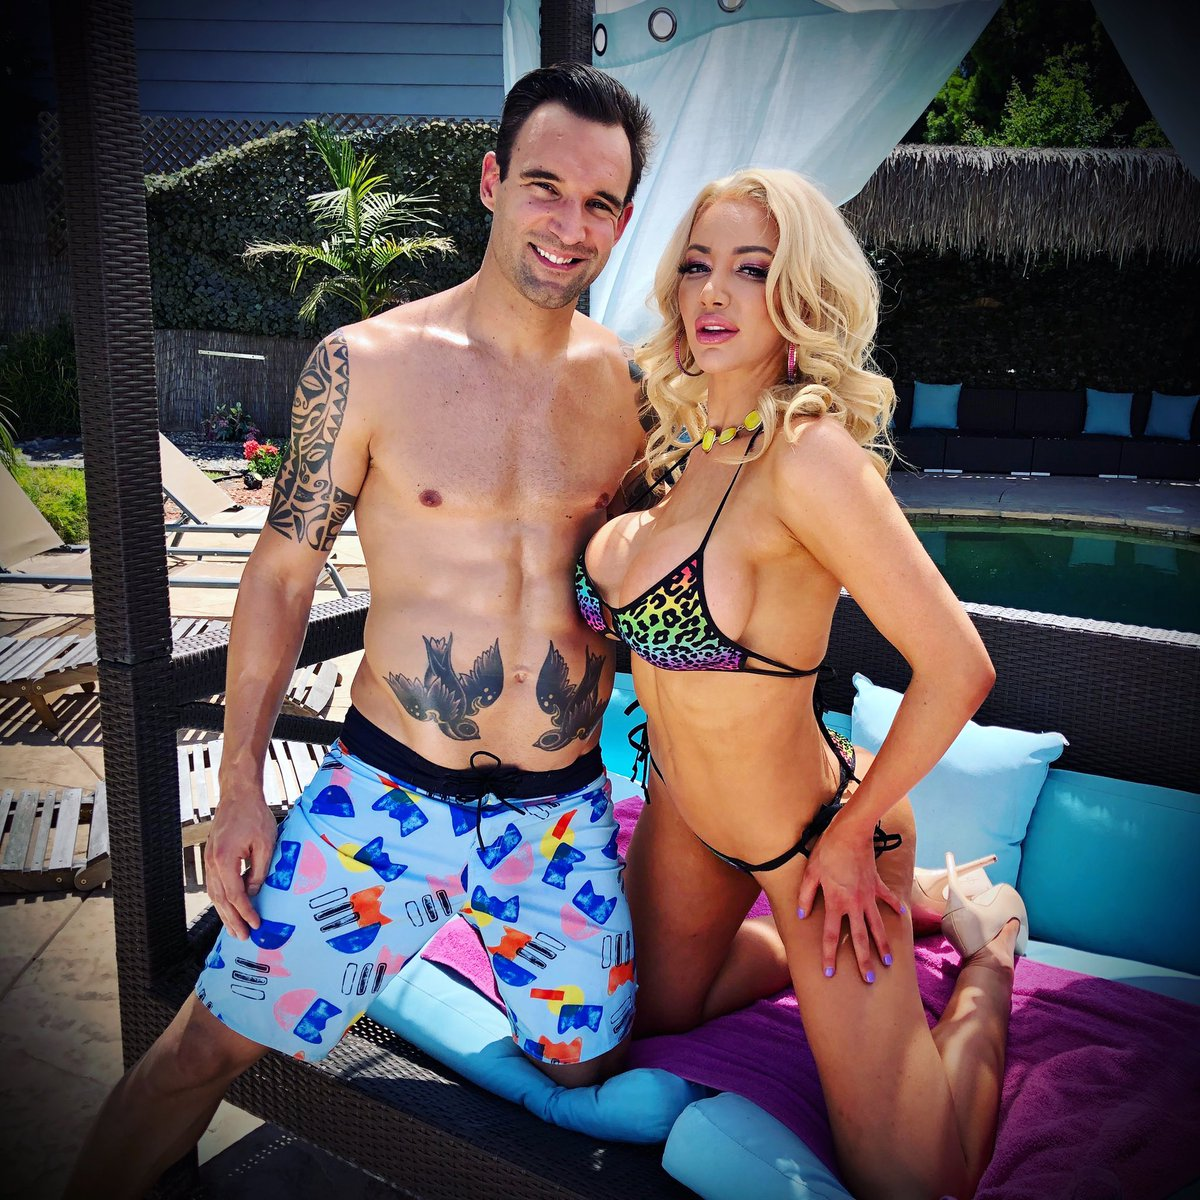 Throwback to a year or so ago and a fun pool scene with @Nicolette_Shea directed by the one and only @toniribas 🙌🏻😎💦🔥